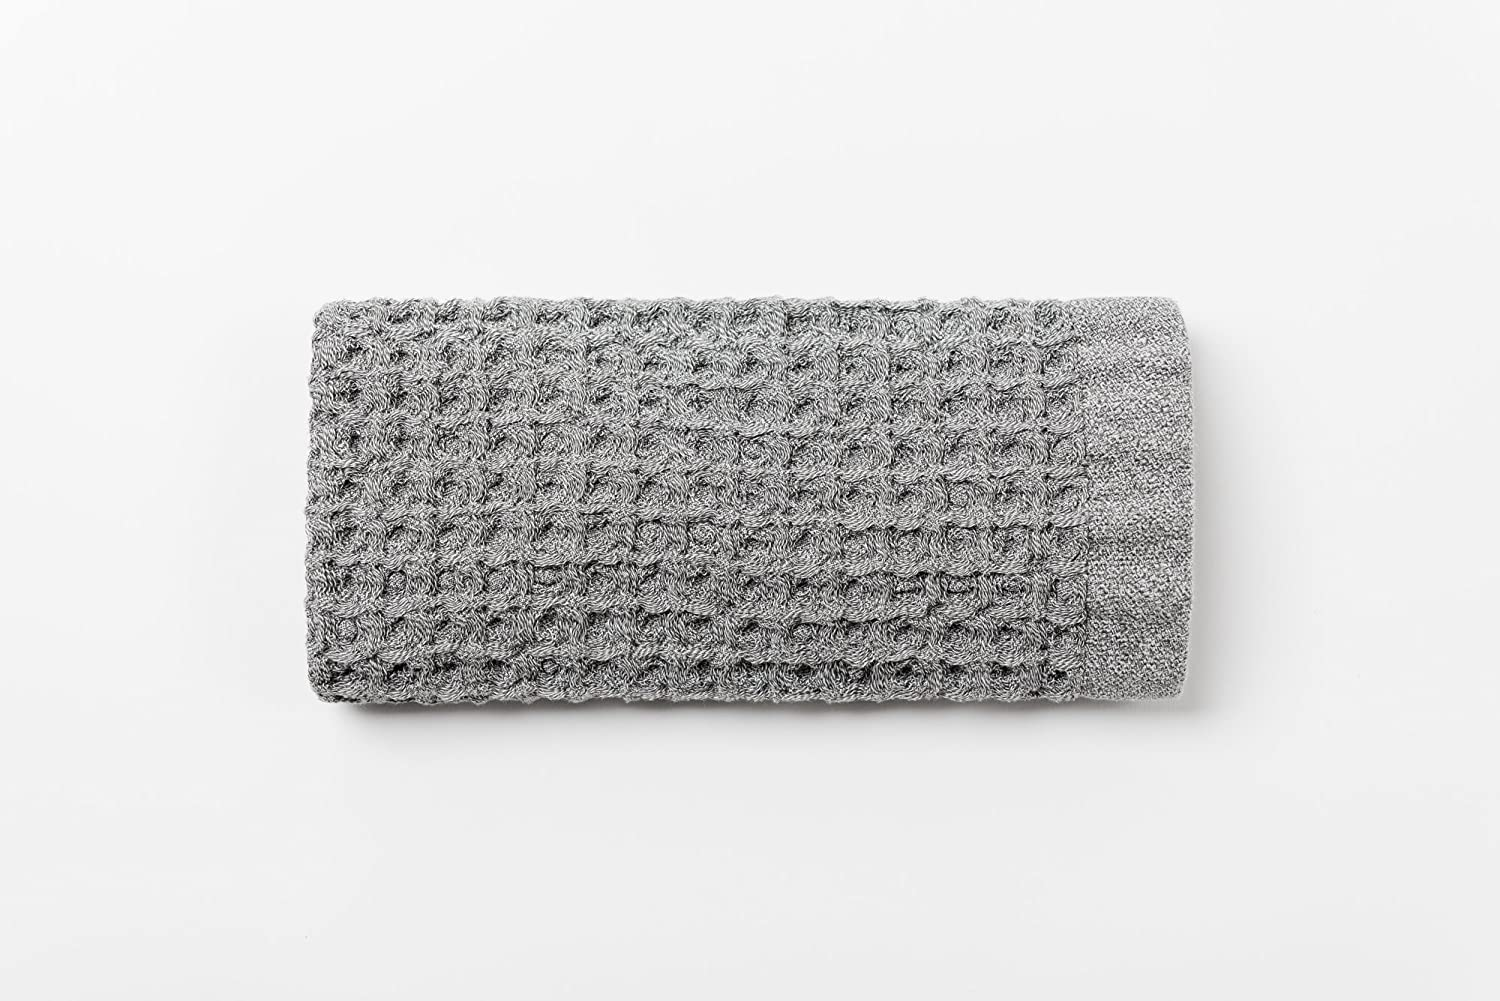 The Onsen Hand Towel